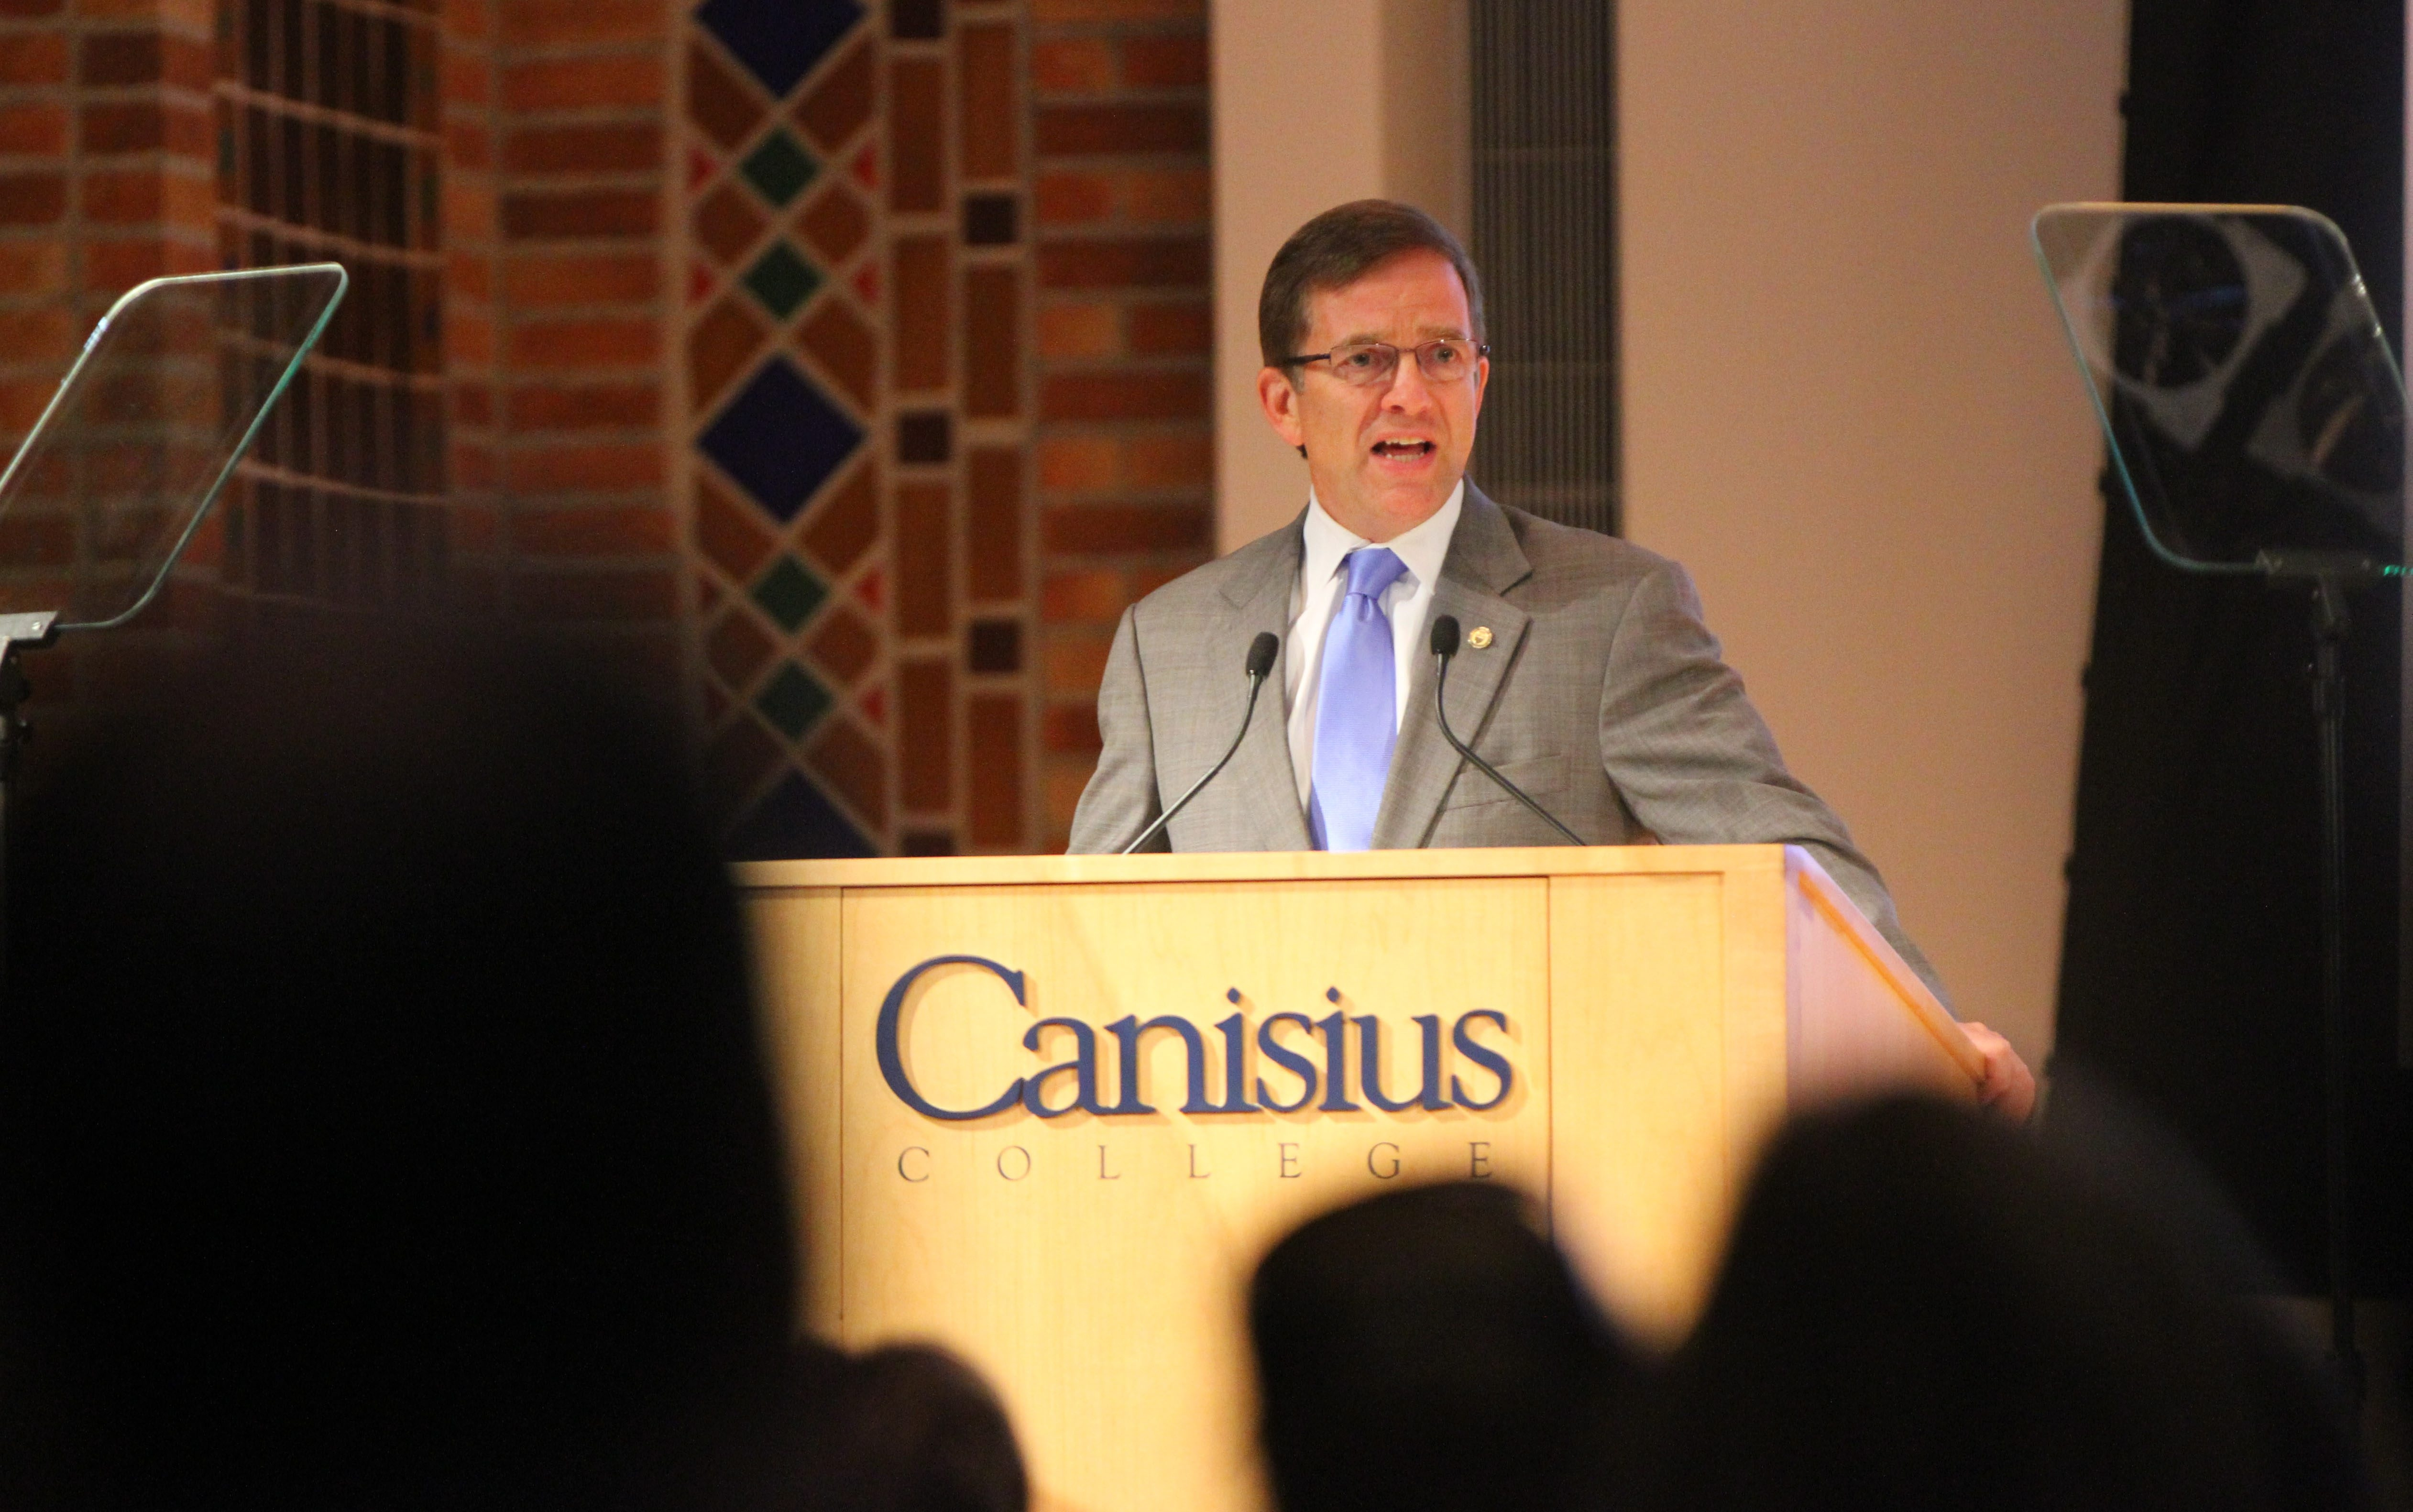 Canisius President John J. Hurley addresses the college body during convocation ceremony.